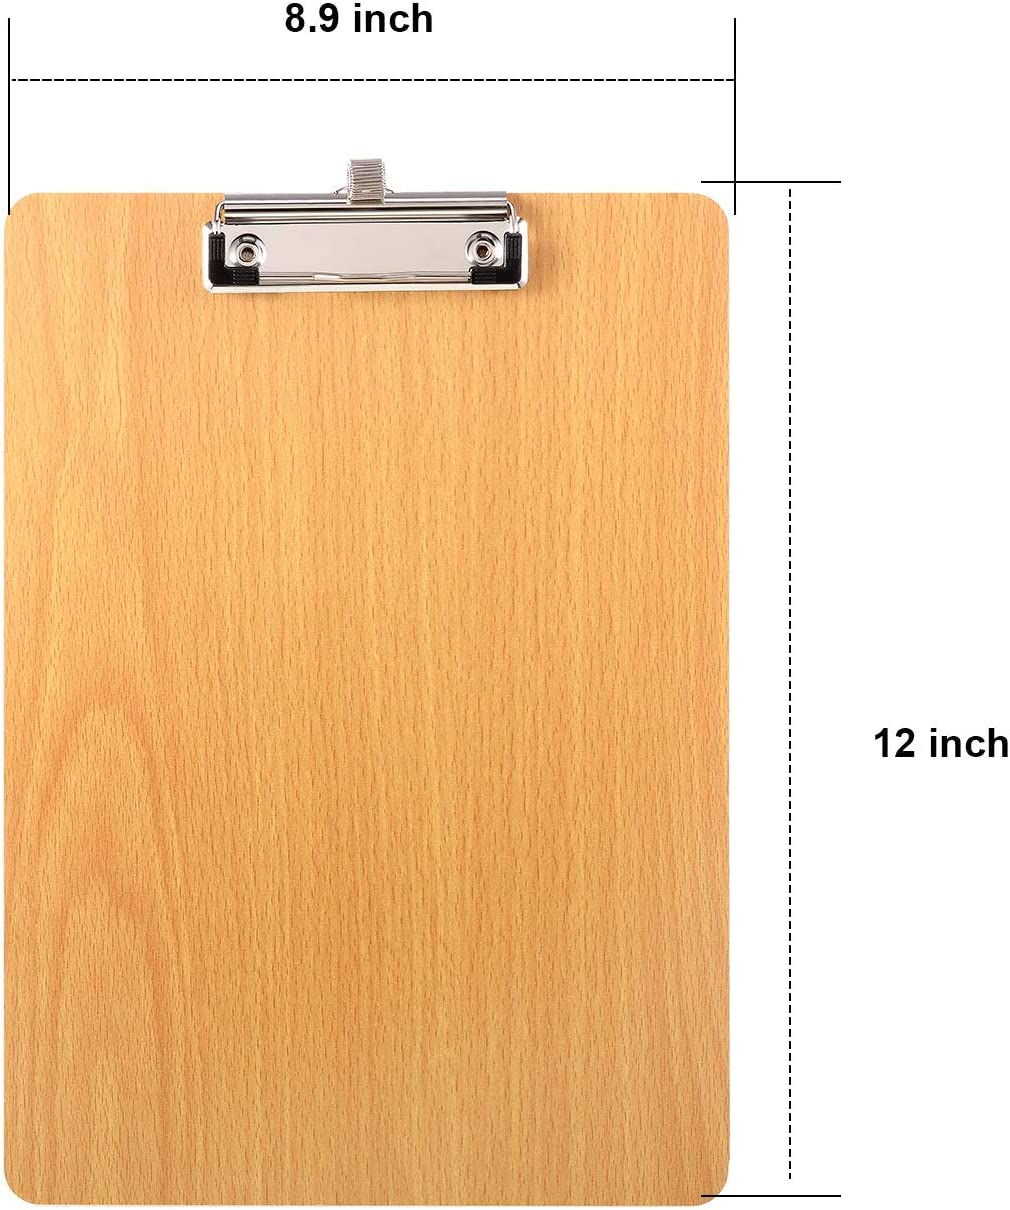 Offices Low Profile Hardboard Wooden Clipboard for Classrooms 8.9 x 12 Inches Clipboard with Pen